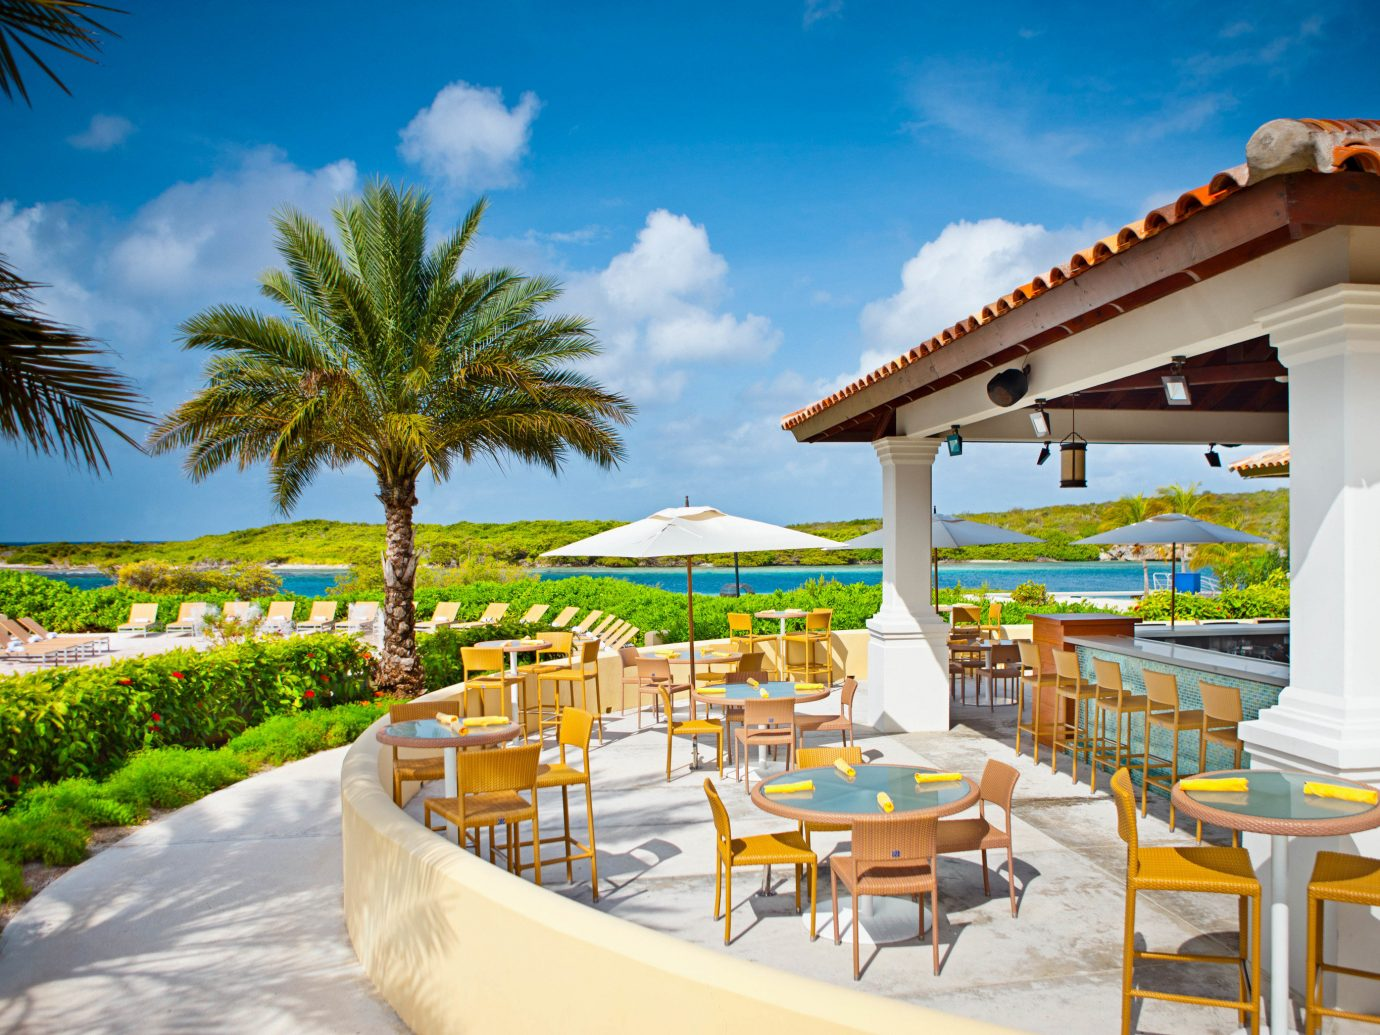 Boutique Hotels Romantic Getaways Romantic Hotels tree sky outdoor Resort chair leisure vacation palm tree arecales real estate swimming pool estate tourism hotel resort town Villa tropics lawn palm furniture